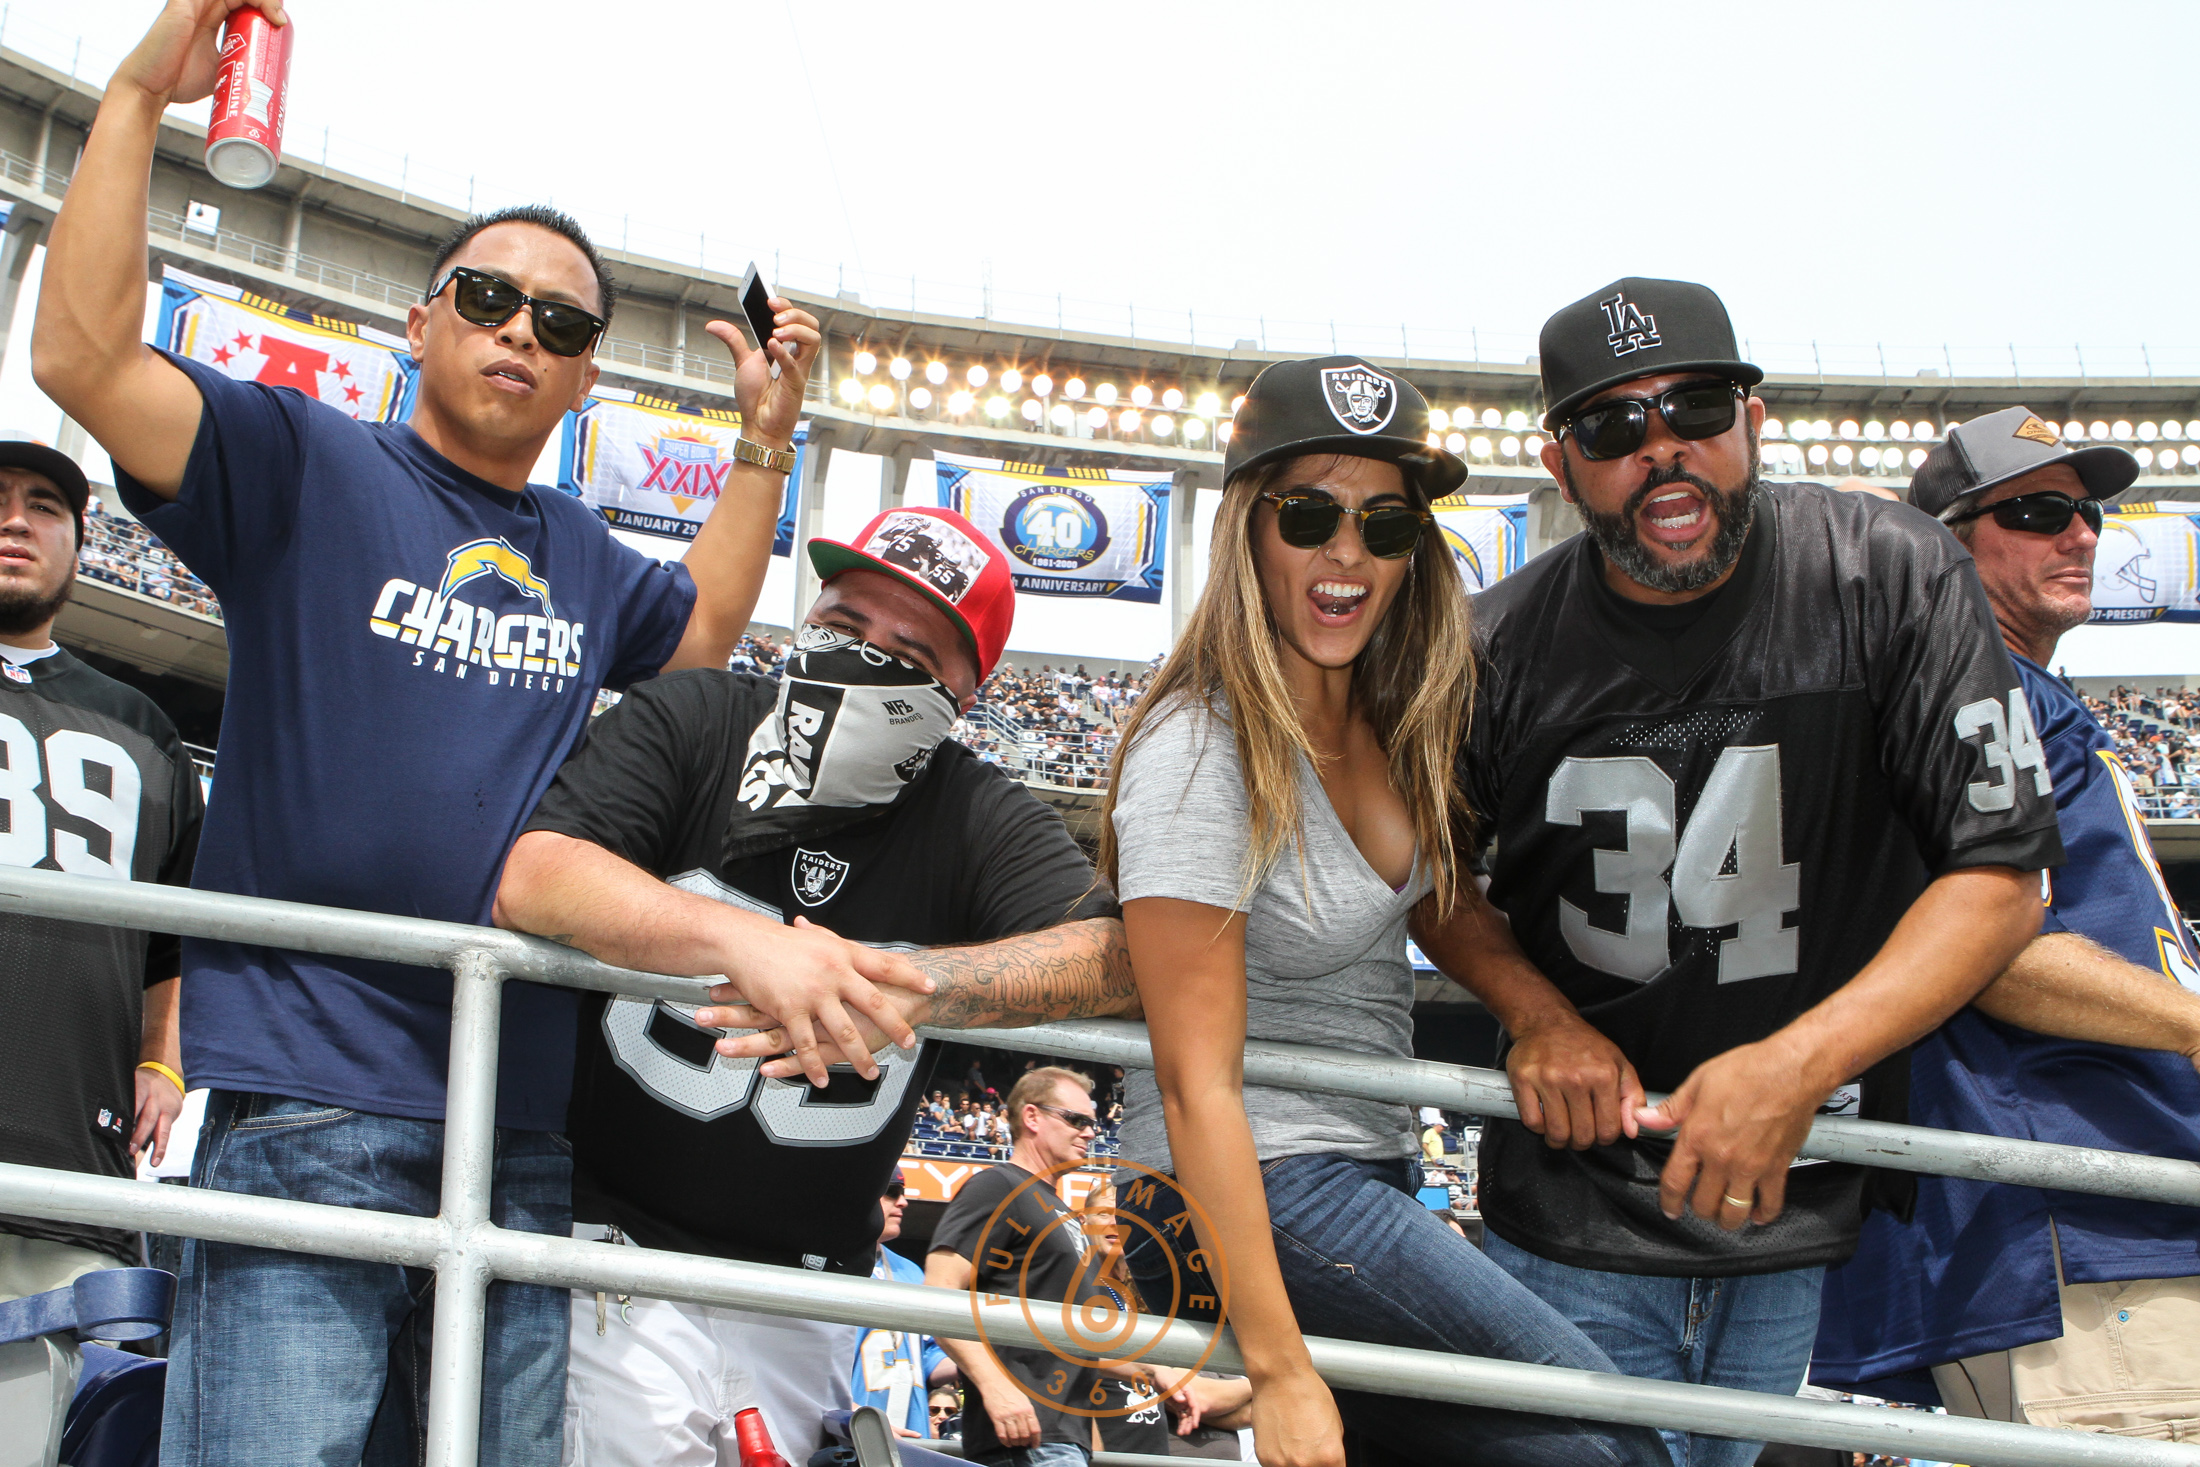 Oct. 25, 2015: Oakland Raiders Fans taking over San Diego in a game played at Qualcomm Stadium in San Diego, CA. (Photo By Jevone Moore/Full Image 360)